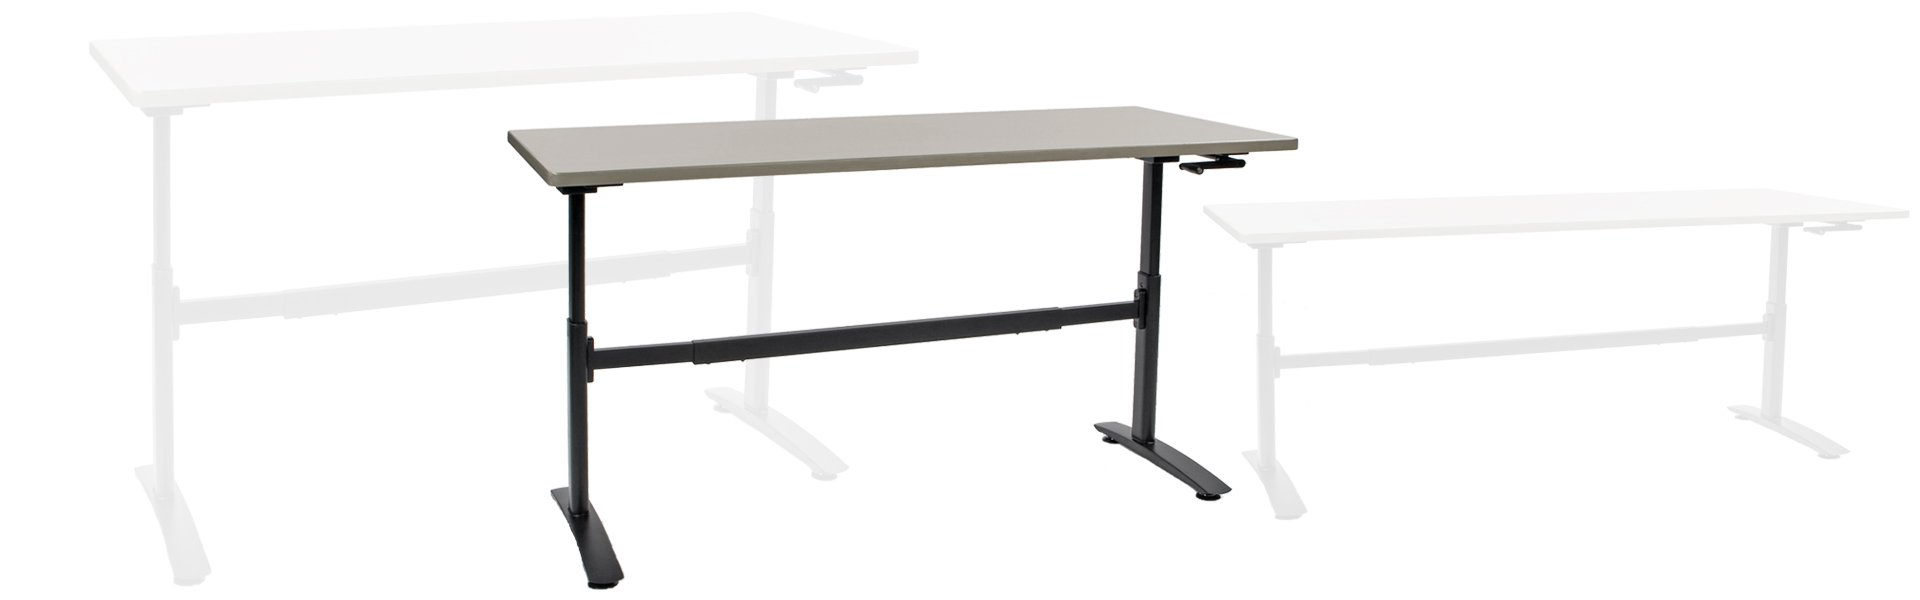 Corilam 640 Adjustable Height Desk